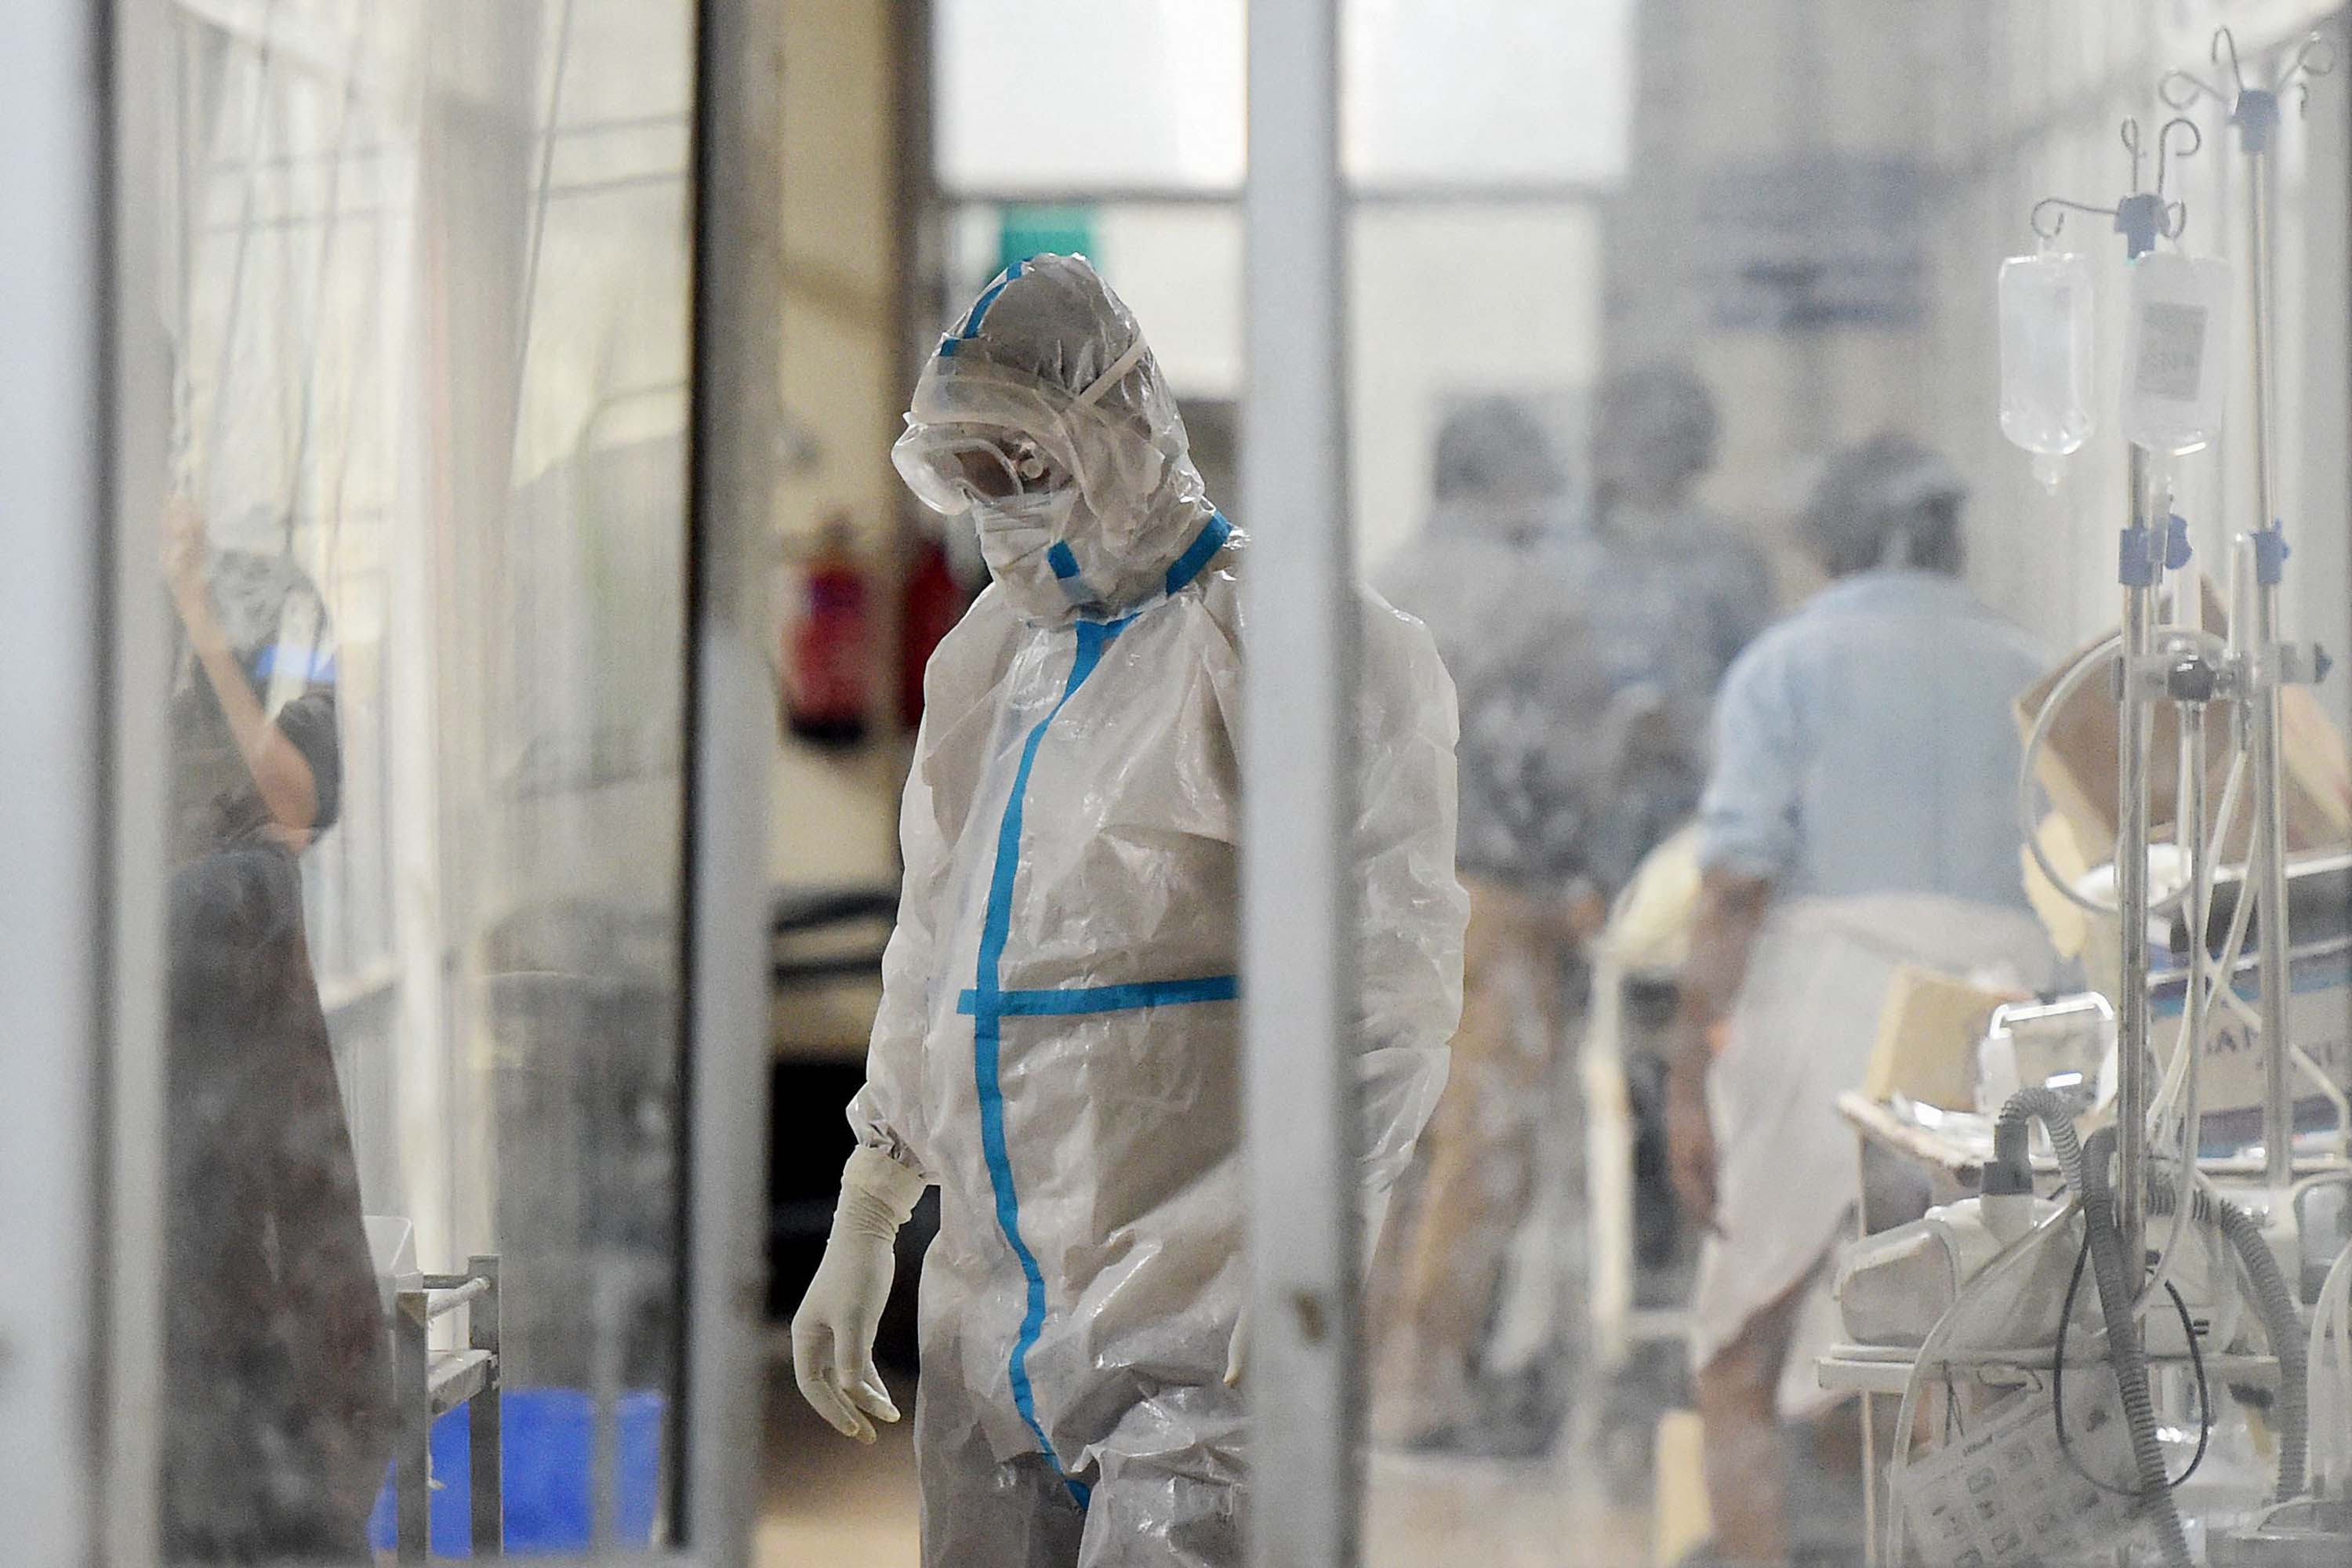 A health worker is seen inside a Covid-19 ward at the SRN hospital, in Allahabad, India, on May 3.